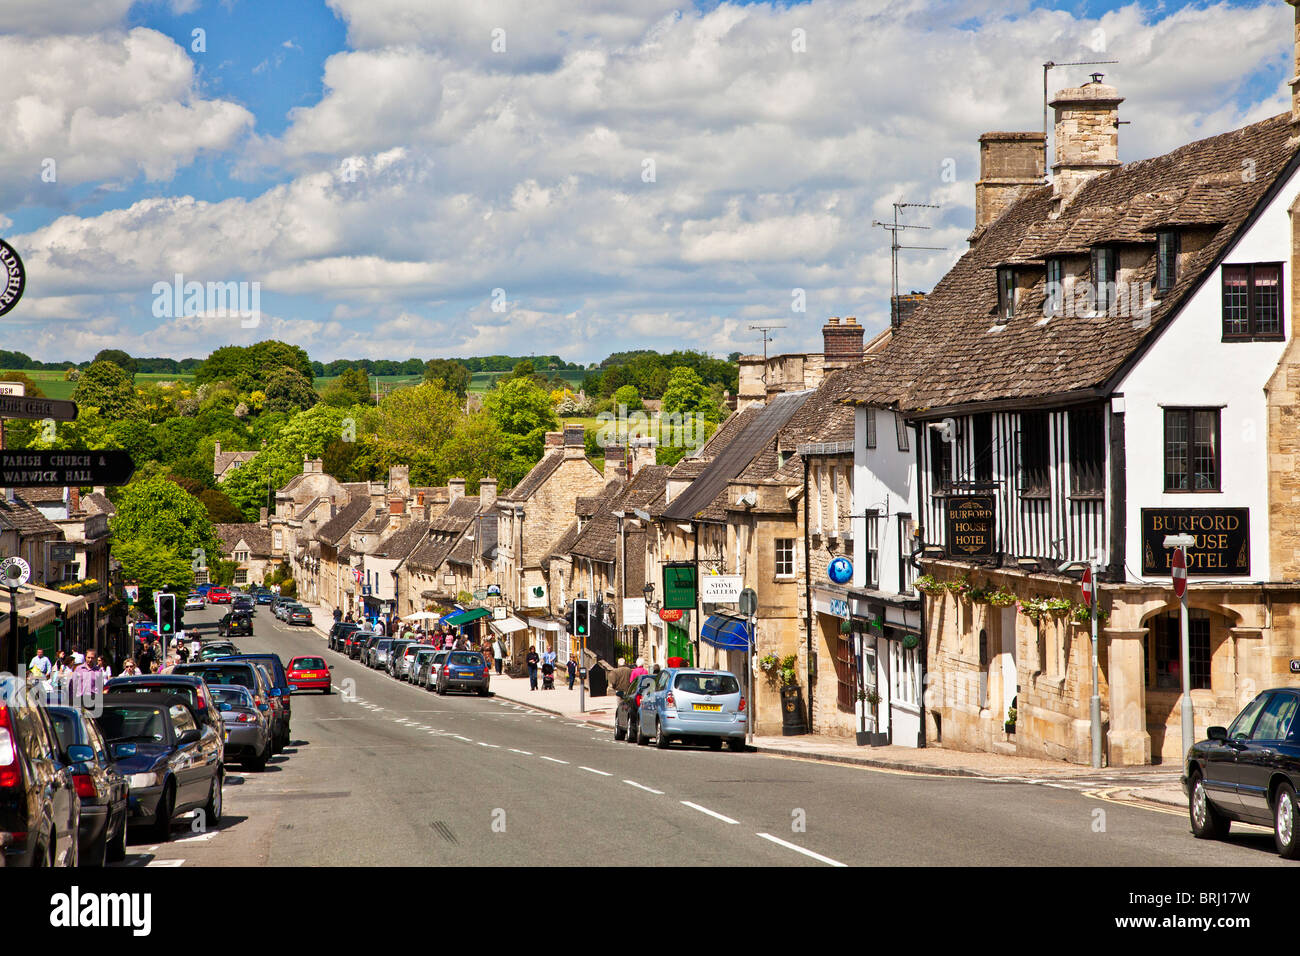 View looking down the High Street in the tourist Cotswold town of Burford, Oxfordshire, England, UK - Stock Image